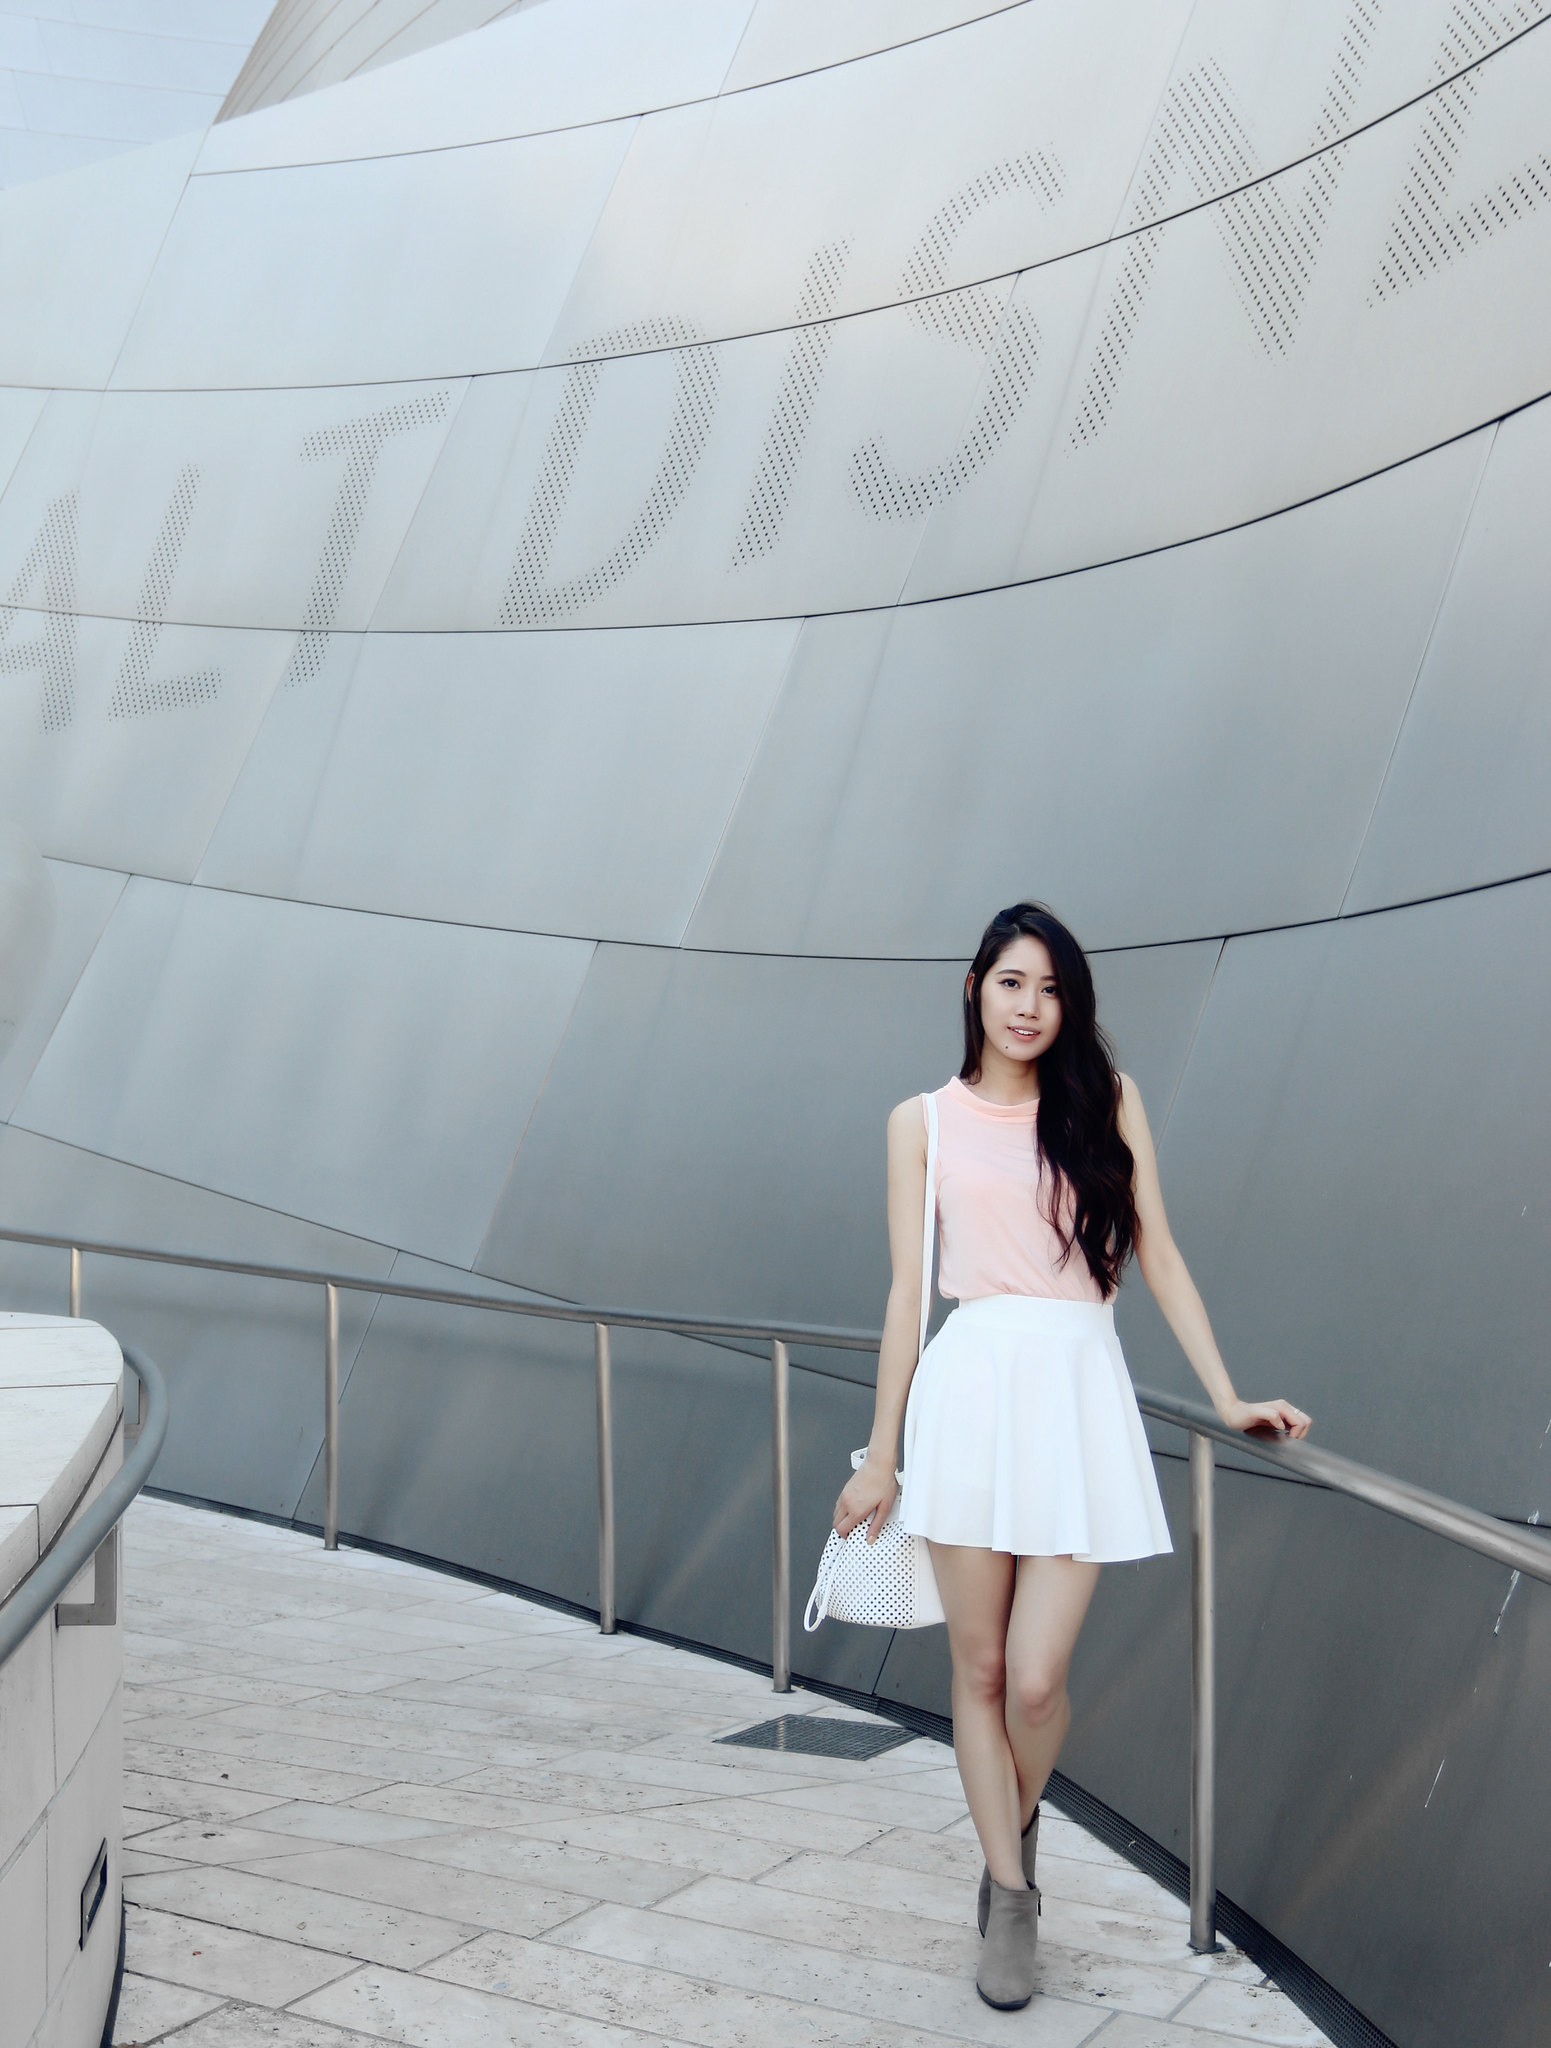 3056-ootd-fashion-bananarepublic-blush-ninewest-summerfashion-koreanfashion-clothestoyouuu-elizabeeetht本